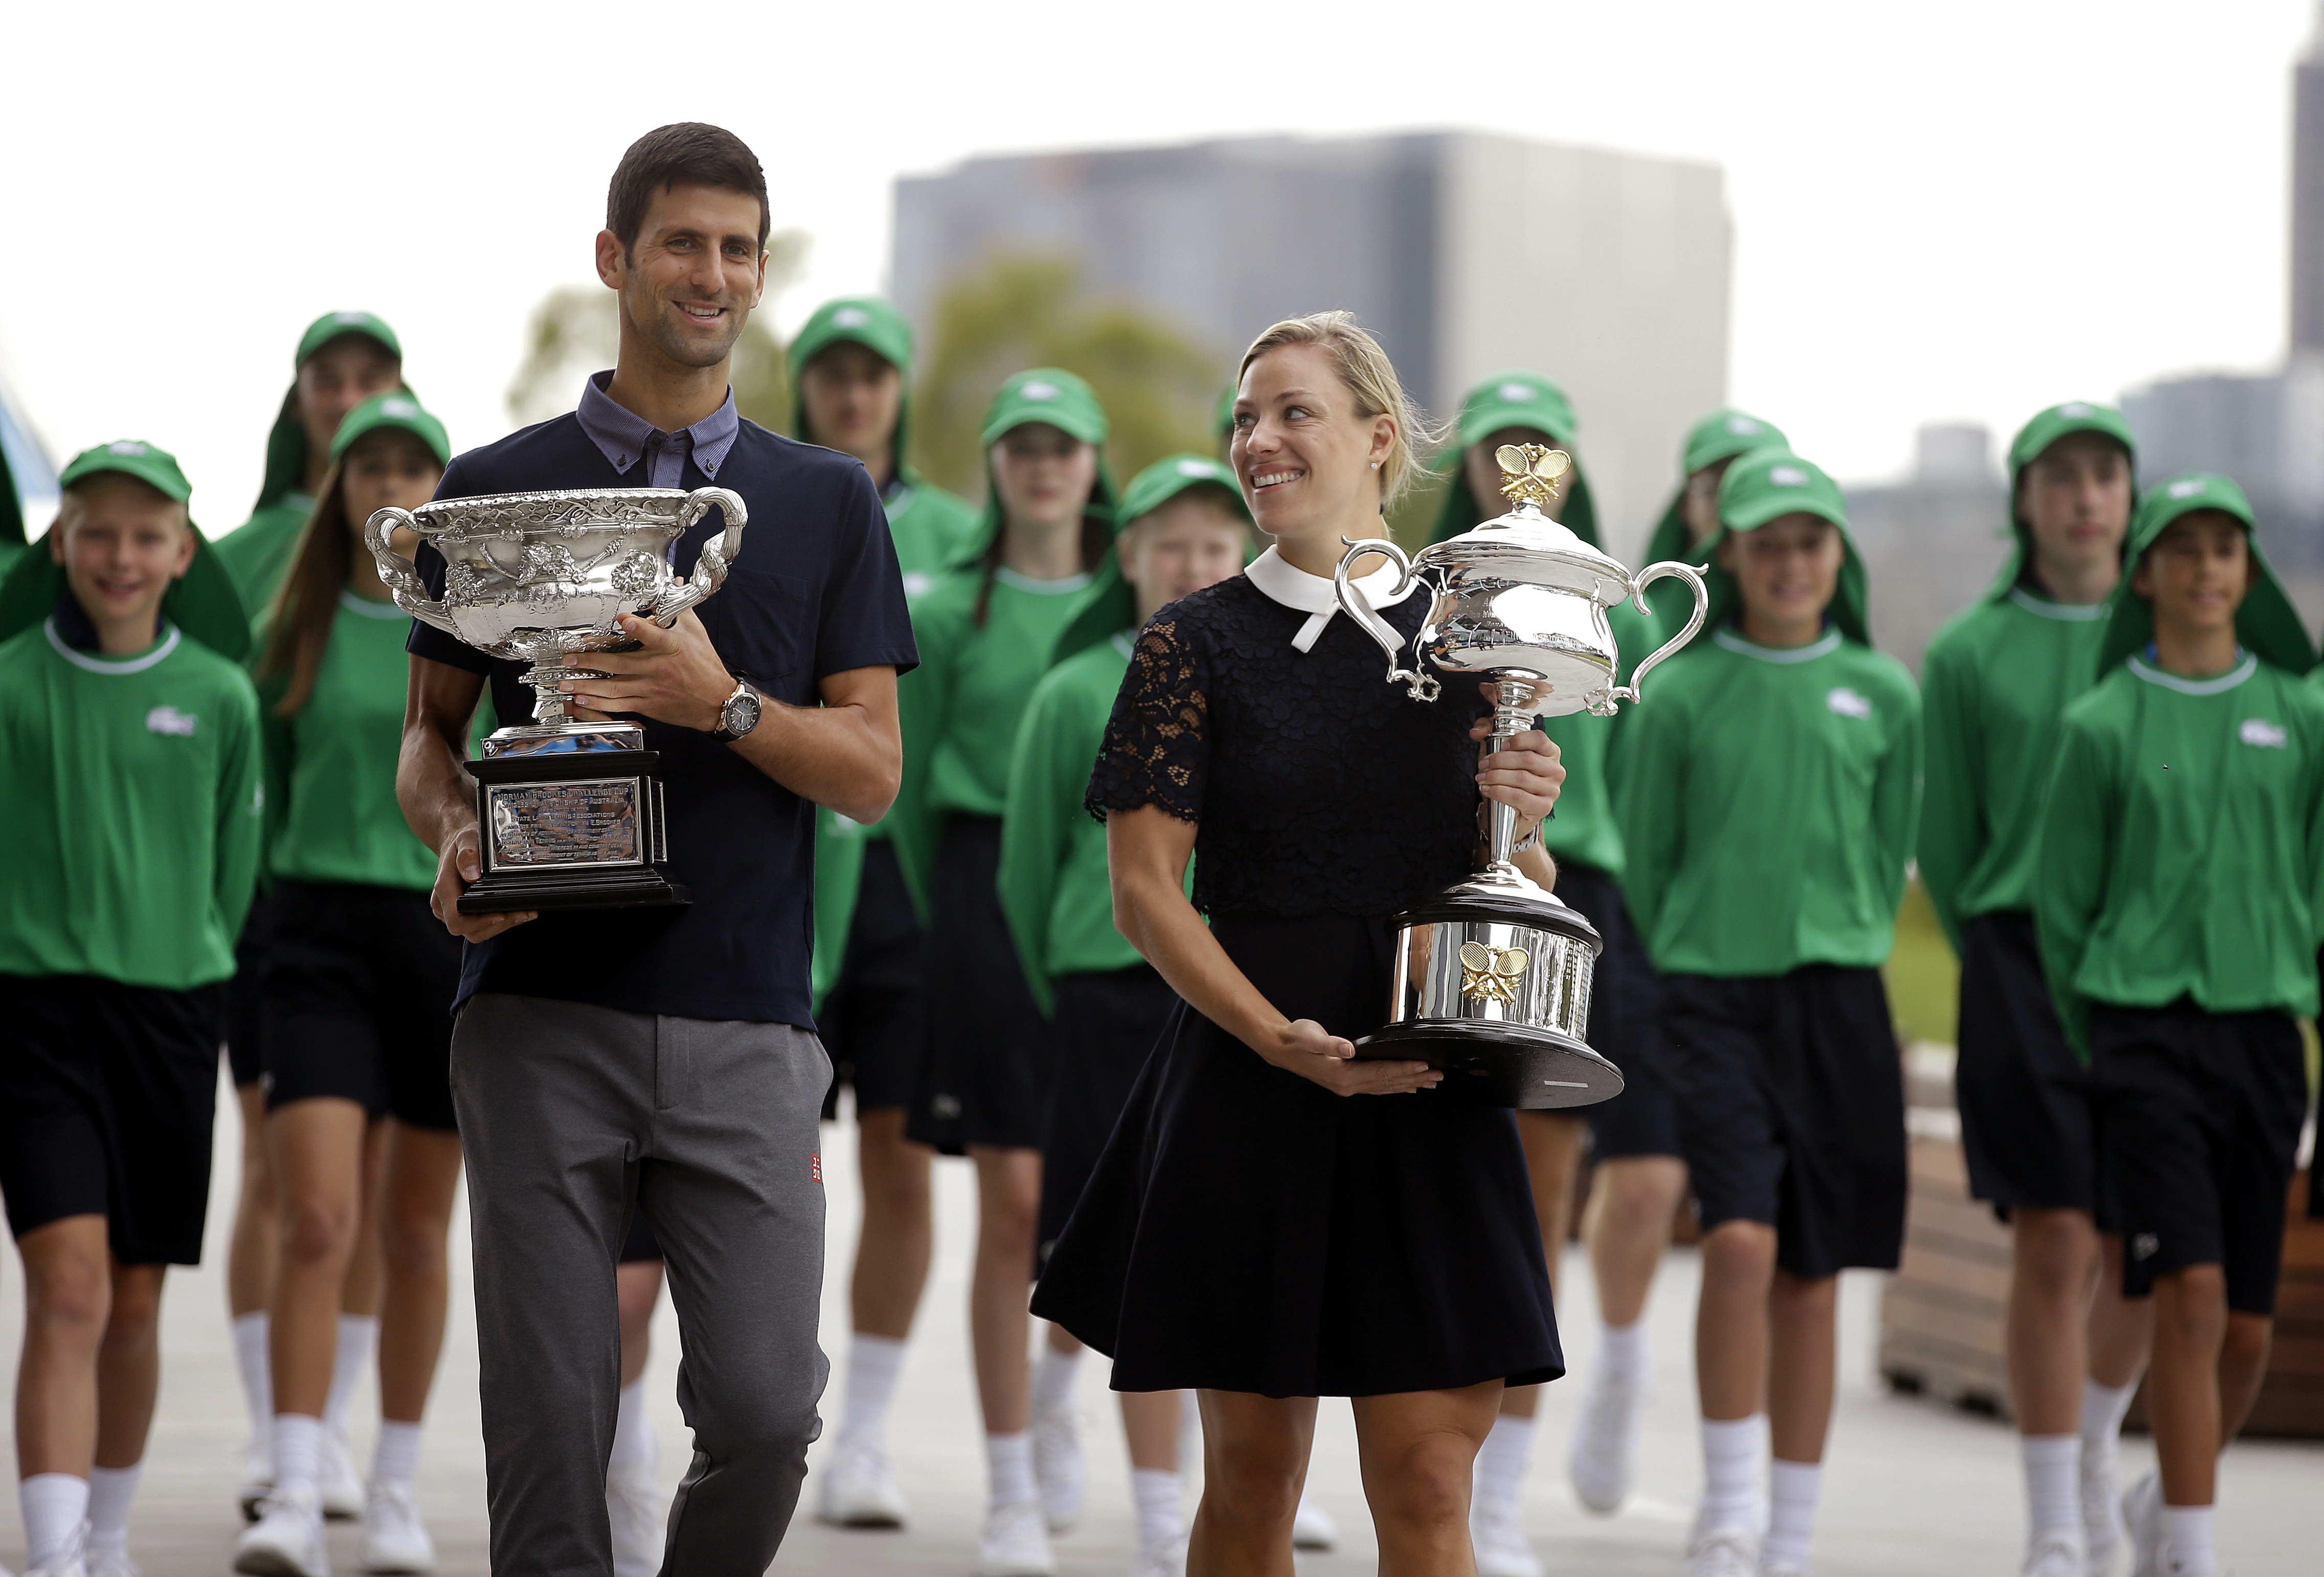 Defending men's and woman's champions Serbia's Novak Djokovic, left, and Germany's Angelique Kerber carry their trophies to the official draw ceremony ahead of the Australian Open tennis championships in Melbourne, Australia, Friday, Jan. 13, 2017. (AP Ph